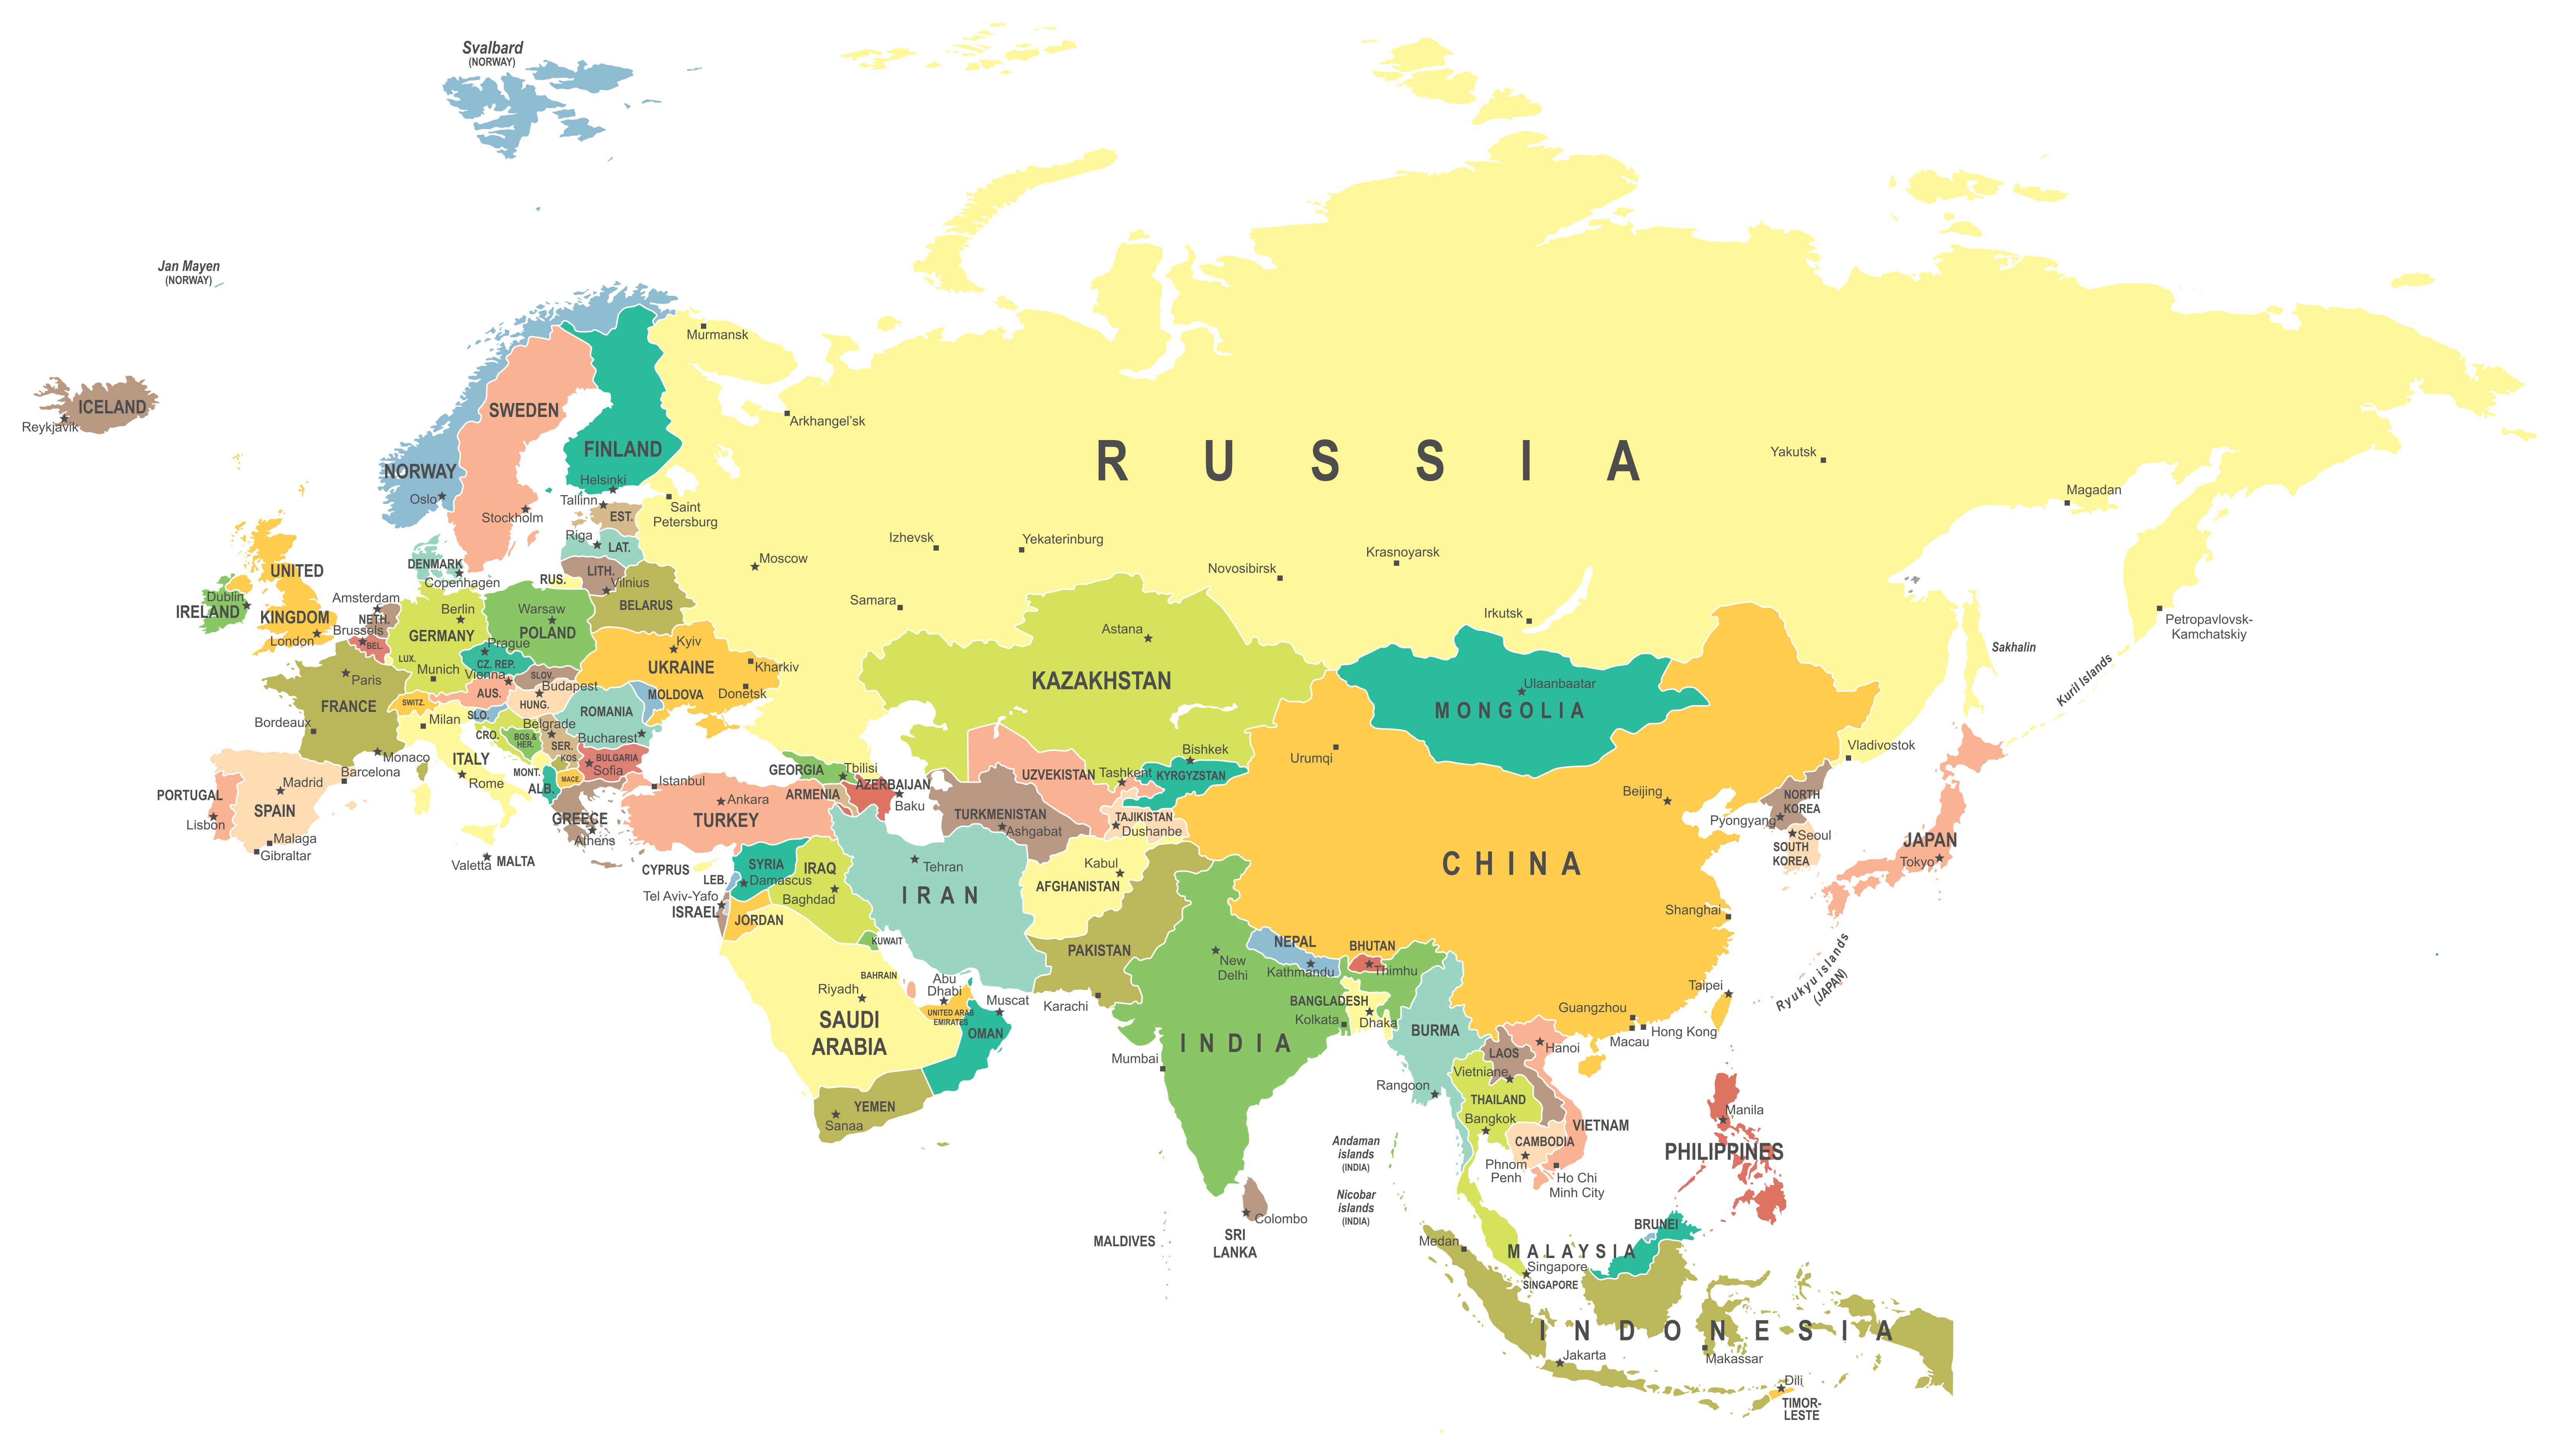 europe and asia border map Pin on Maps of the world